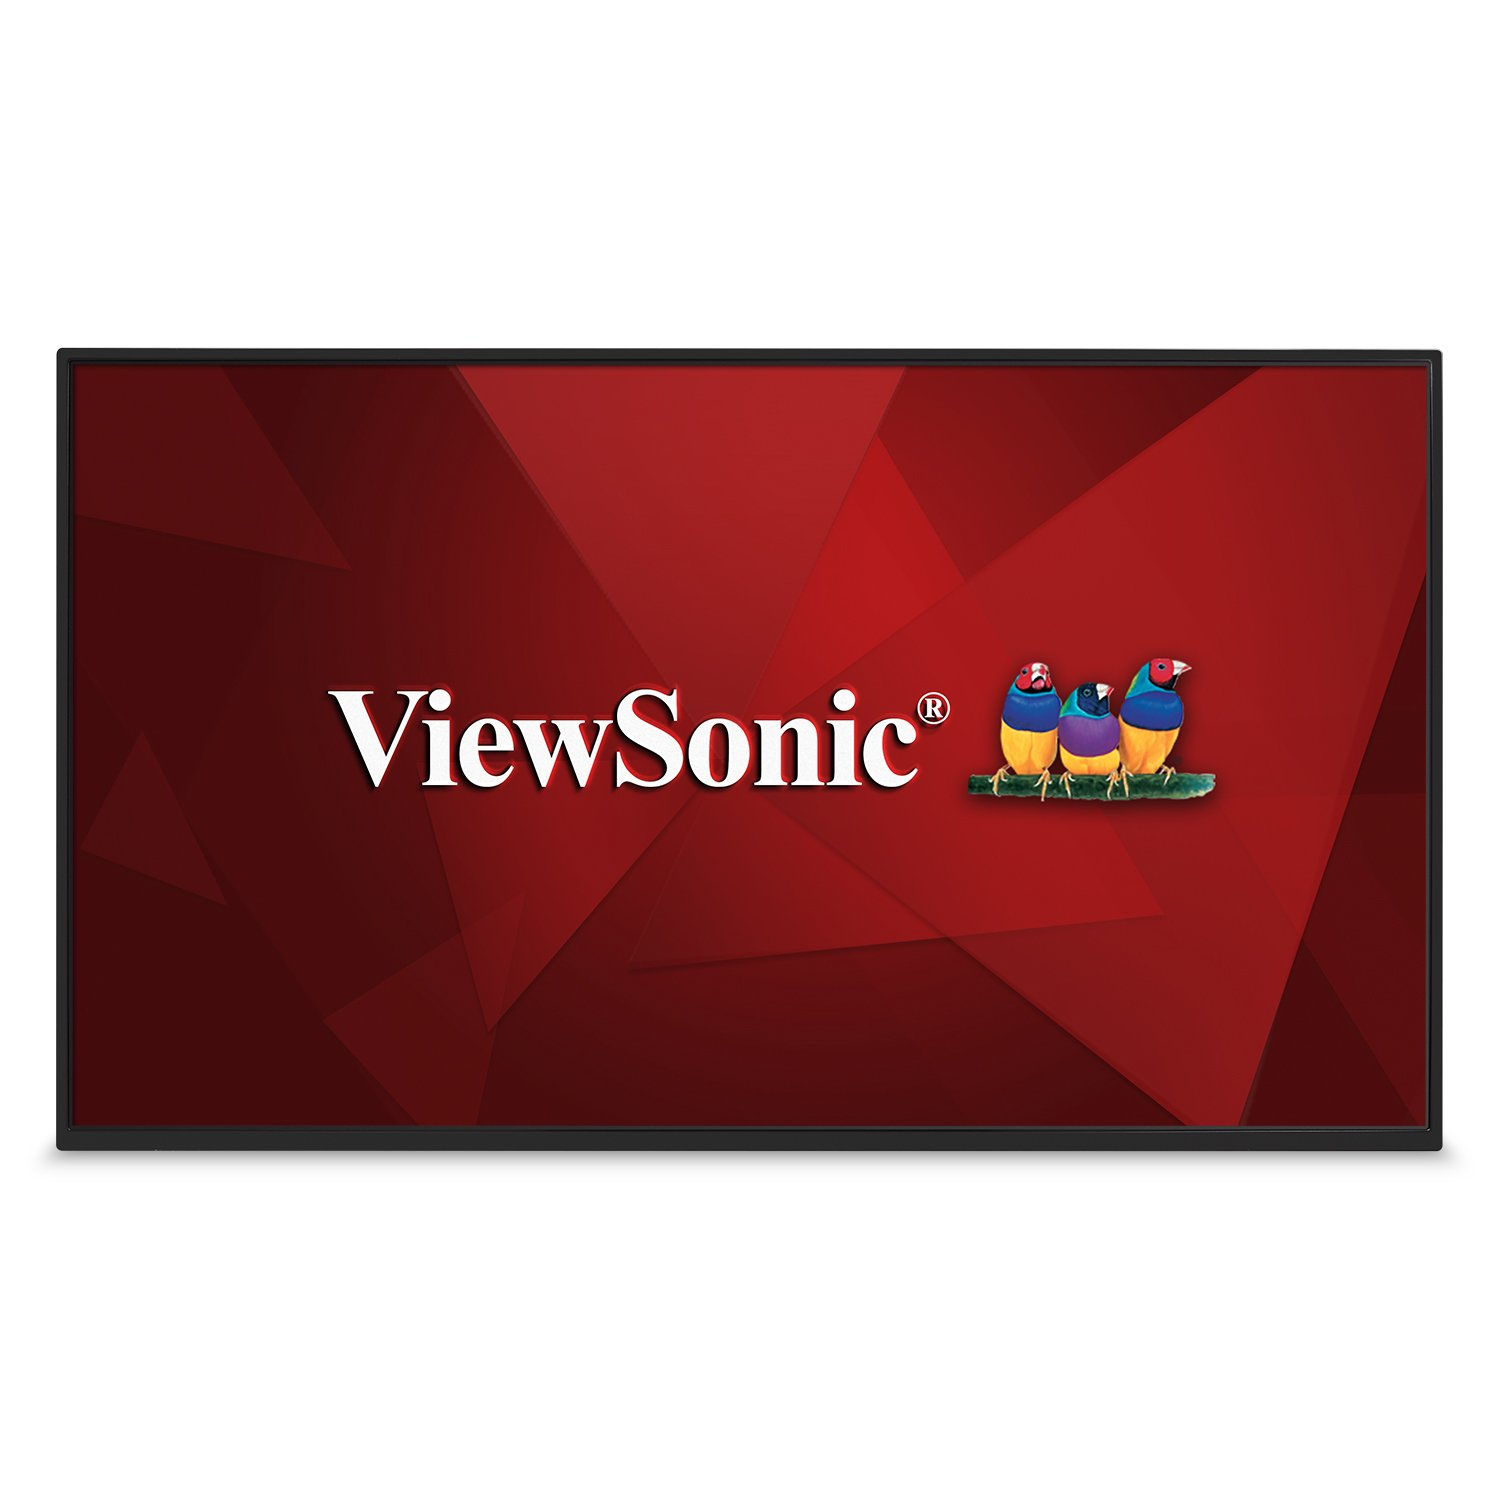 Viewsonic 192081 Led Cdm5500r 55 All-in-one Commercial Display Retail by ViewSonic